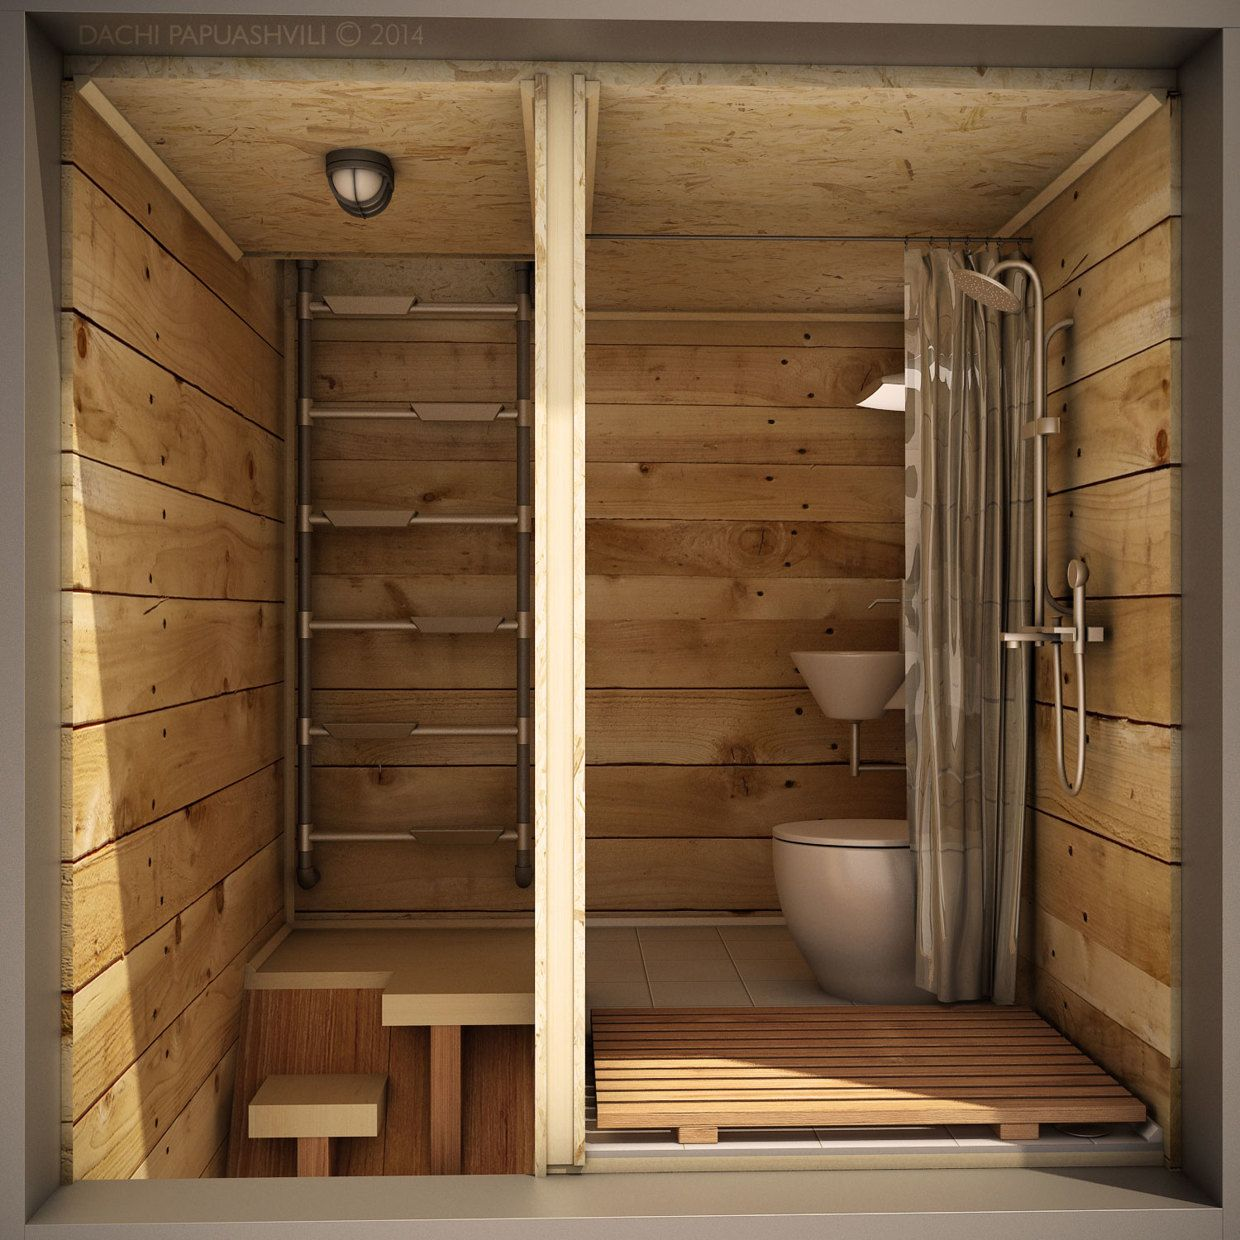 Dachi Papuahvili S Micro Shipping Container Home Mit Bildern Container Hauser Micro Haus Aussentoilette